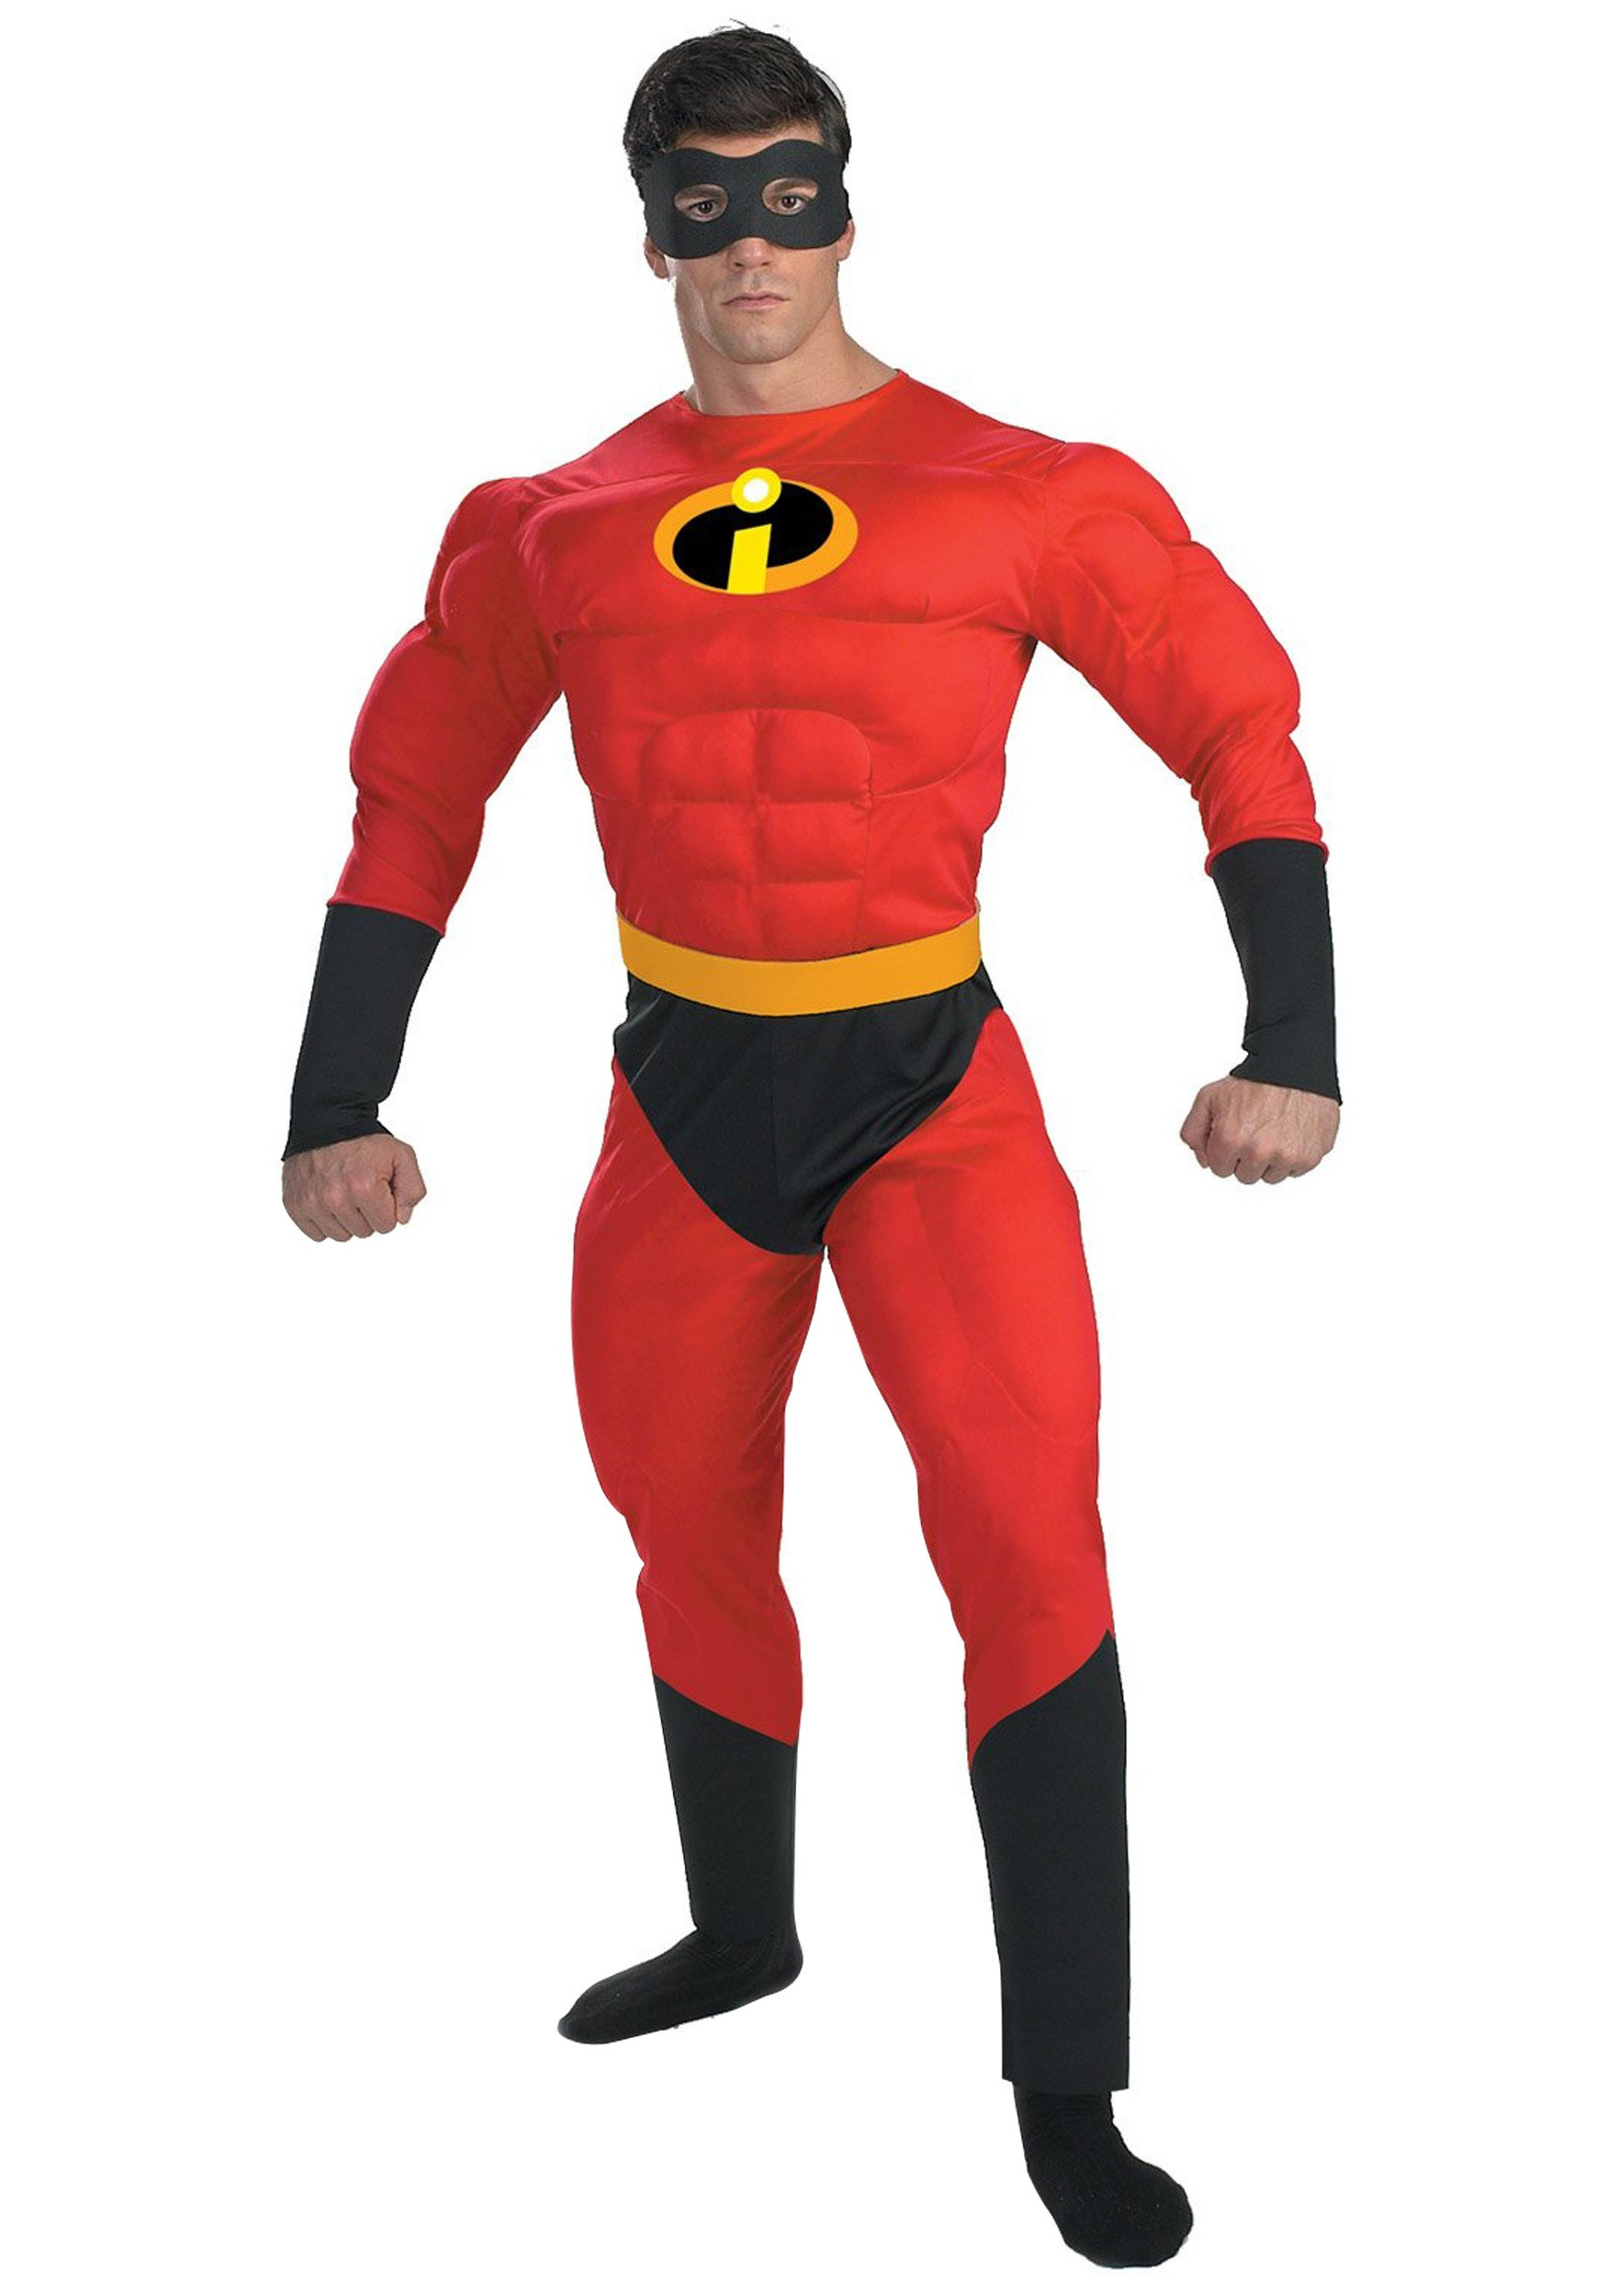 Best ideas about Incredibles DIY Costumes . Save or Pin Mr Incredible Deluxe Muscle Plus Size Costume Now.